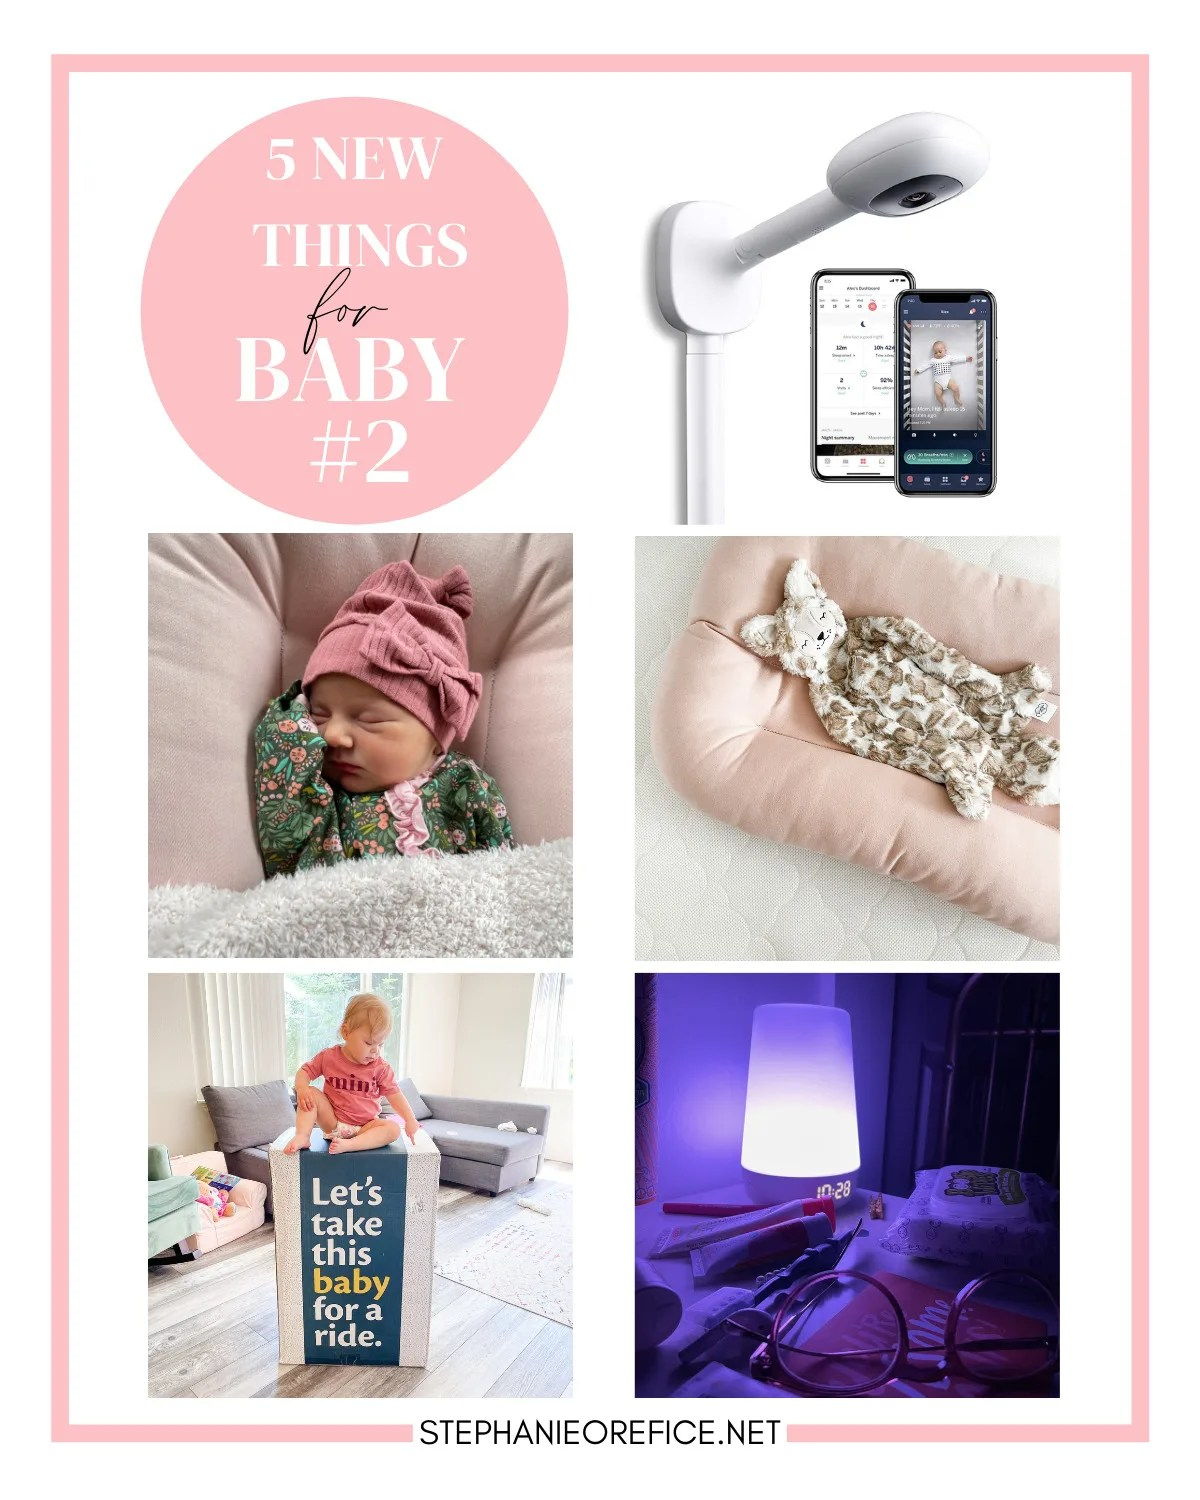 5 new things for Baby #2